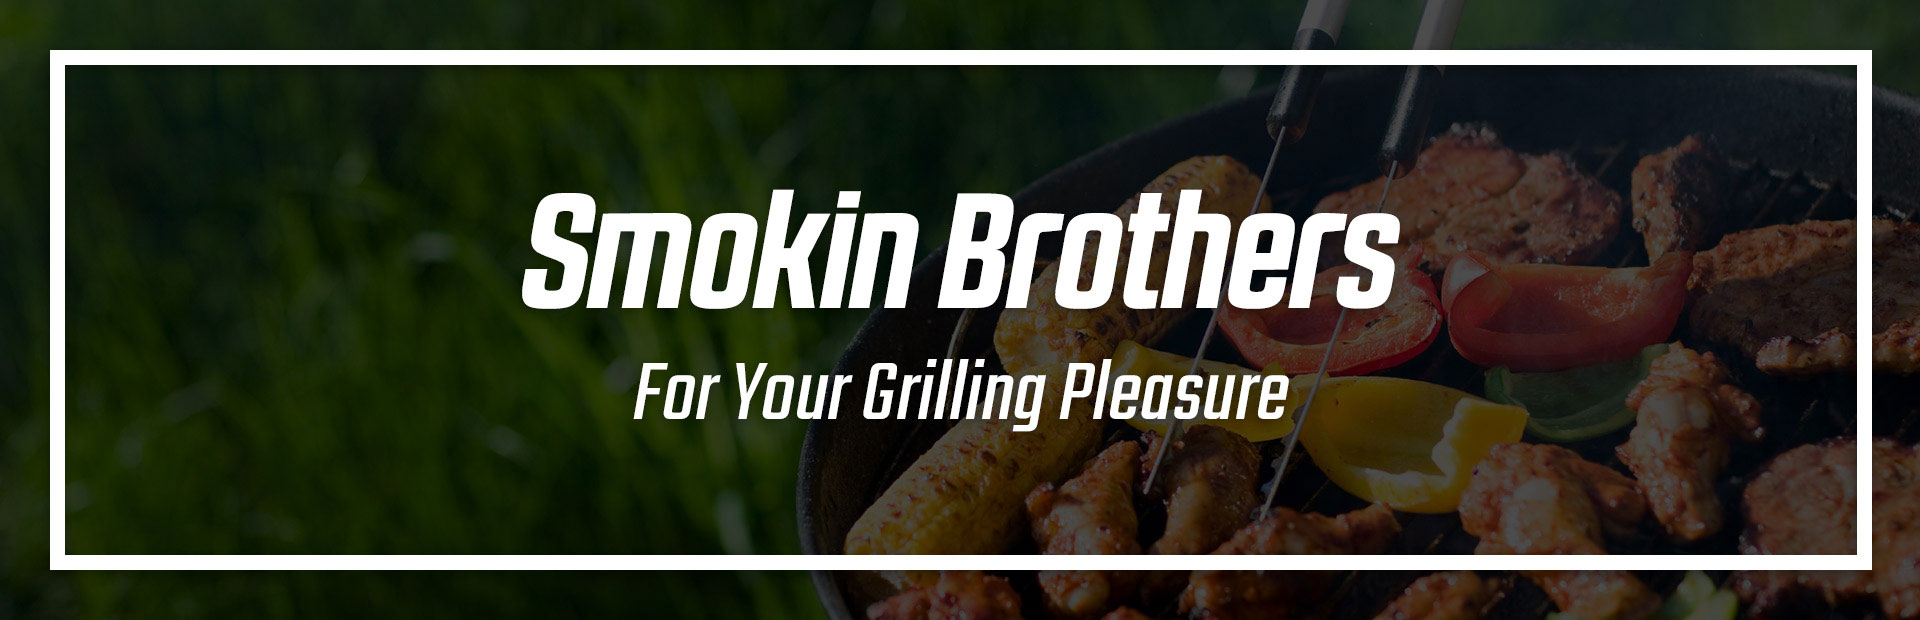 Smokin Brothers: For Your Grilling Pleasure